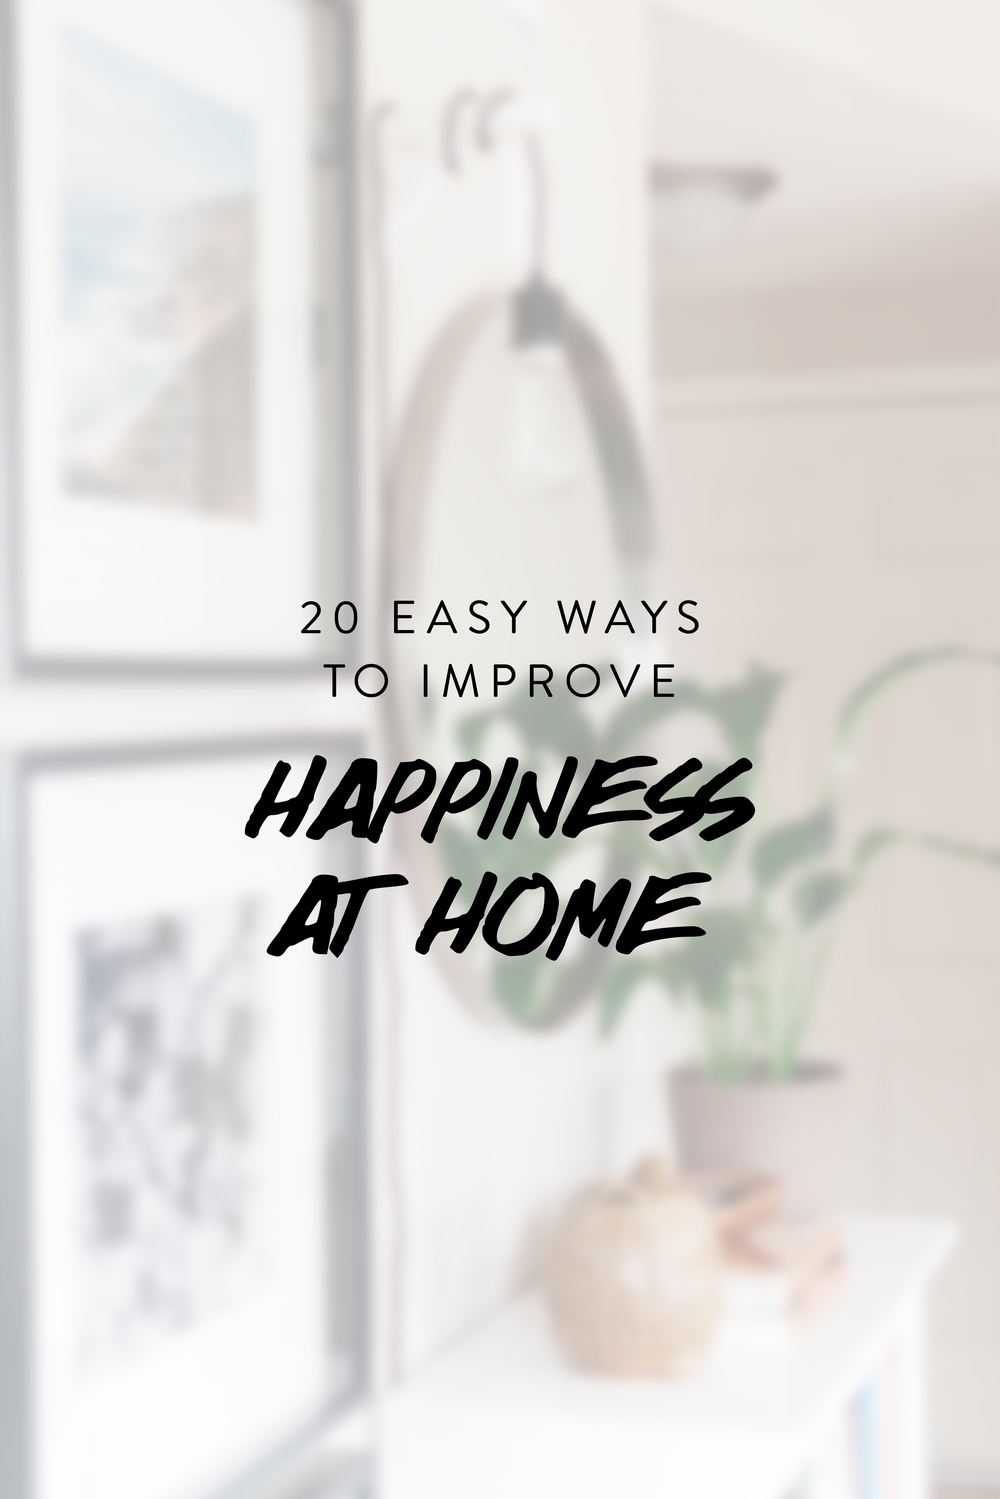 20 Easy Ways To Improve Happiness At Home